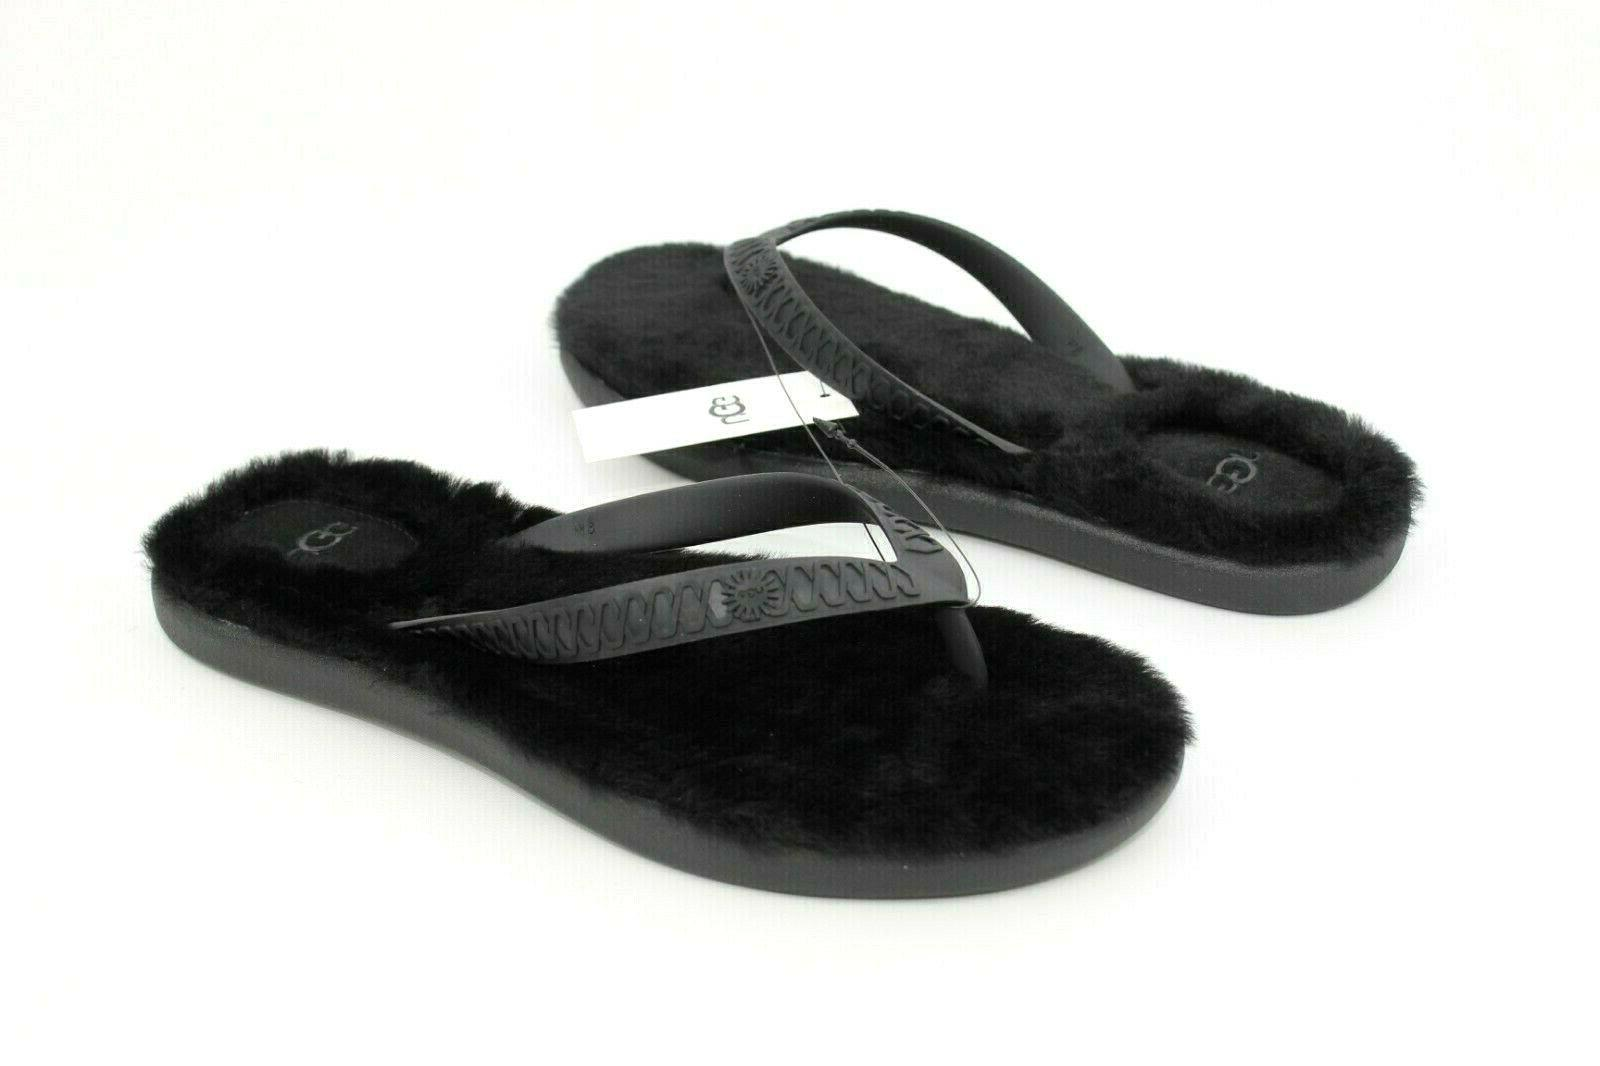 fluffie sheepskin pool beach flip flops black